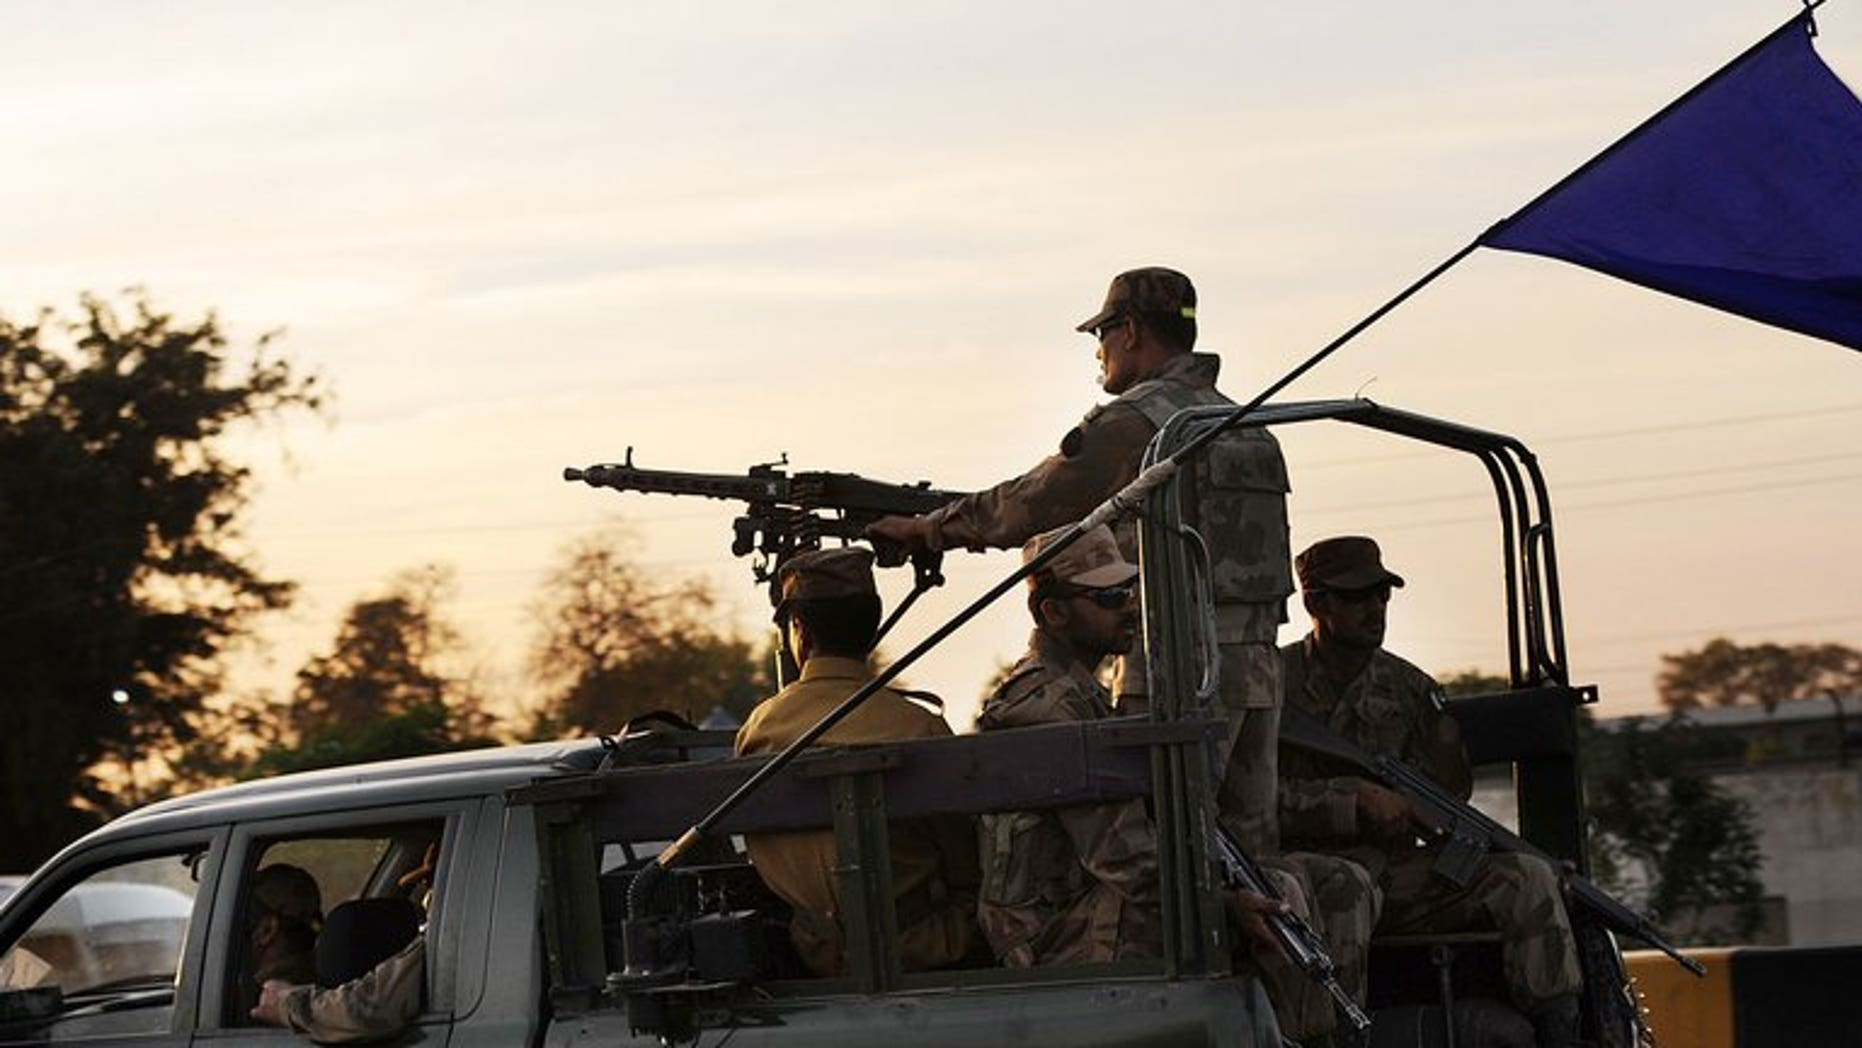 Pakistani army troops deploy in the Khyber Pakhtunkhwa Province on May 9, 2013. Pakistani authorities on Thursday found the bodies of 20 militants killed by military bombs in a restive tribal area earlier this week, an official said.